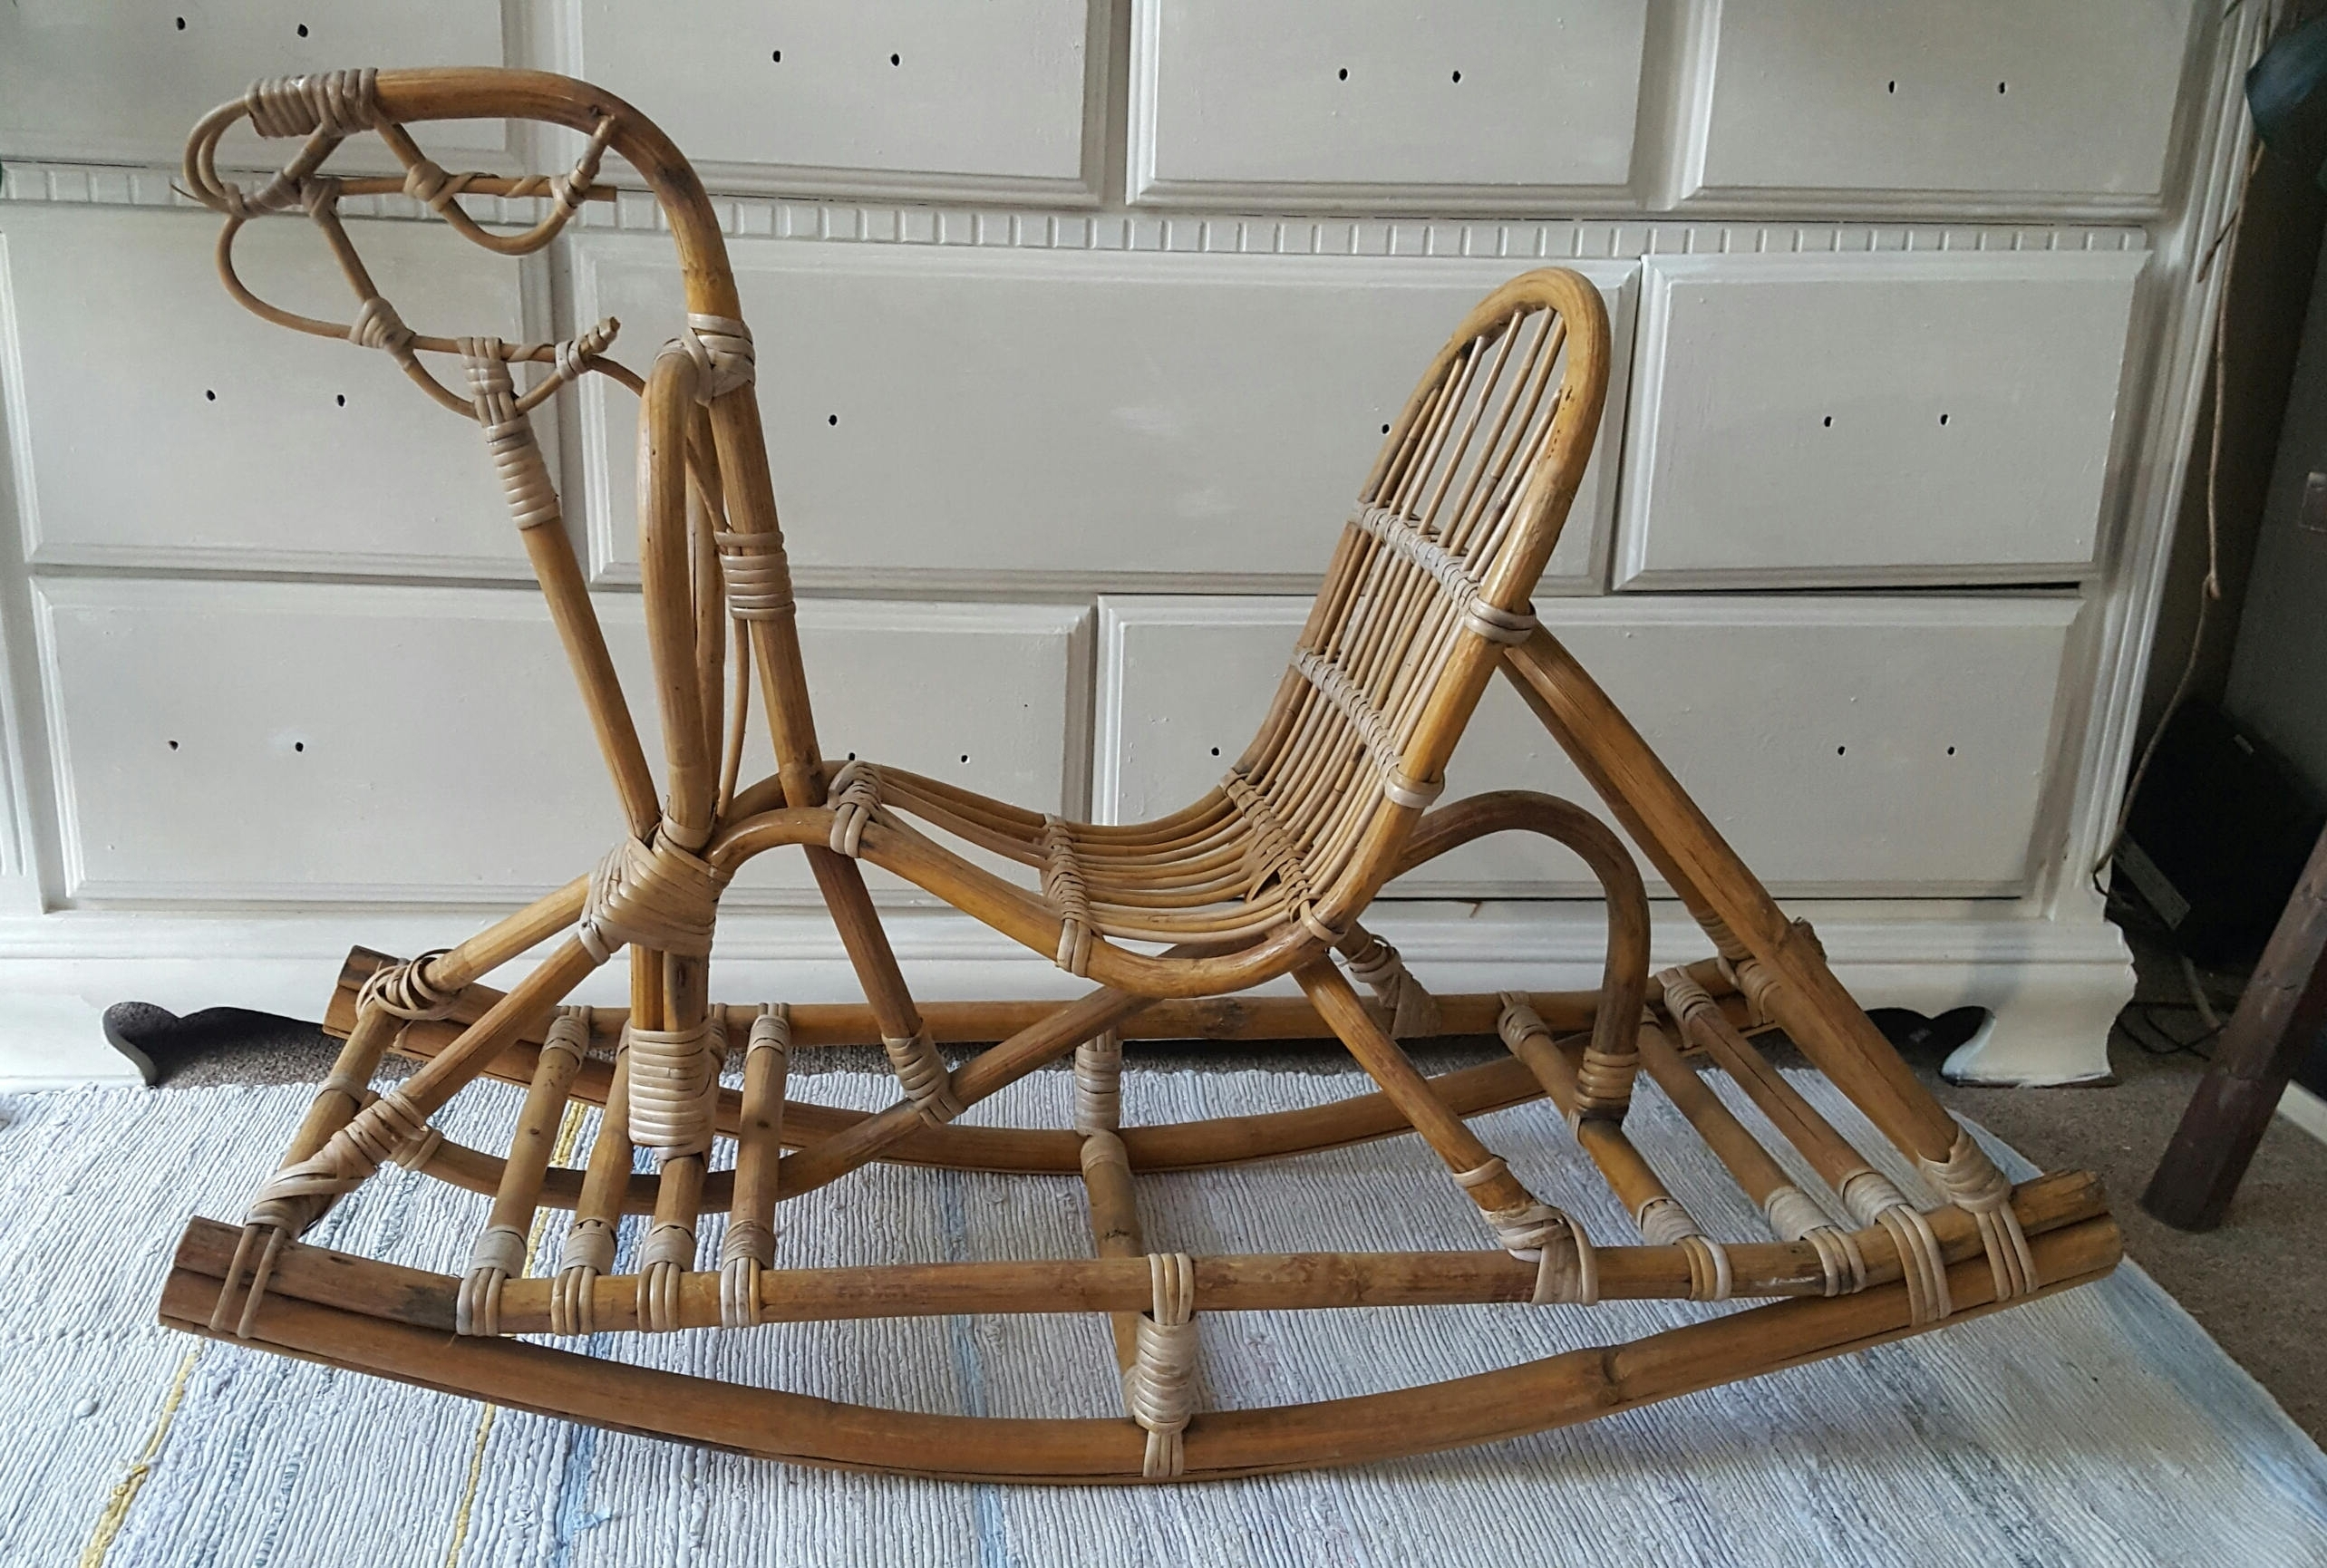 Newest Wicker Rocking Chair With Magazine Holder In Sold Midcentury Modern Danish Rattan Cane Rocking Horse, Modernist Bamboo, Franco Albini, Eva Nissen Style Rocking Horse, Retro (View 11 of 15)